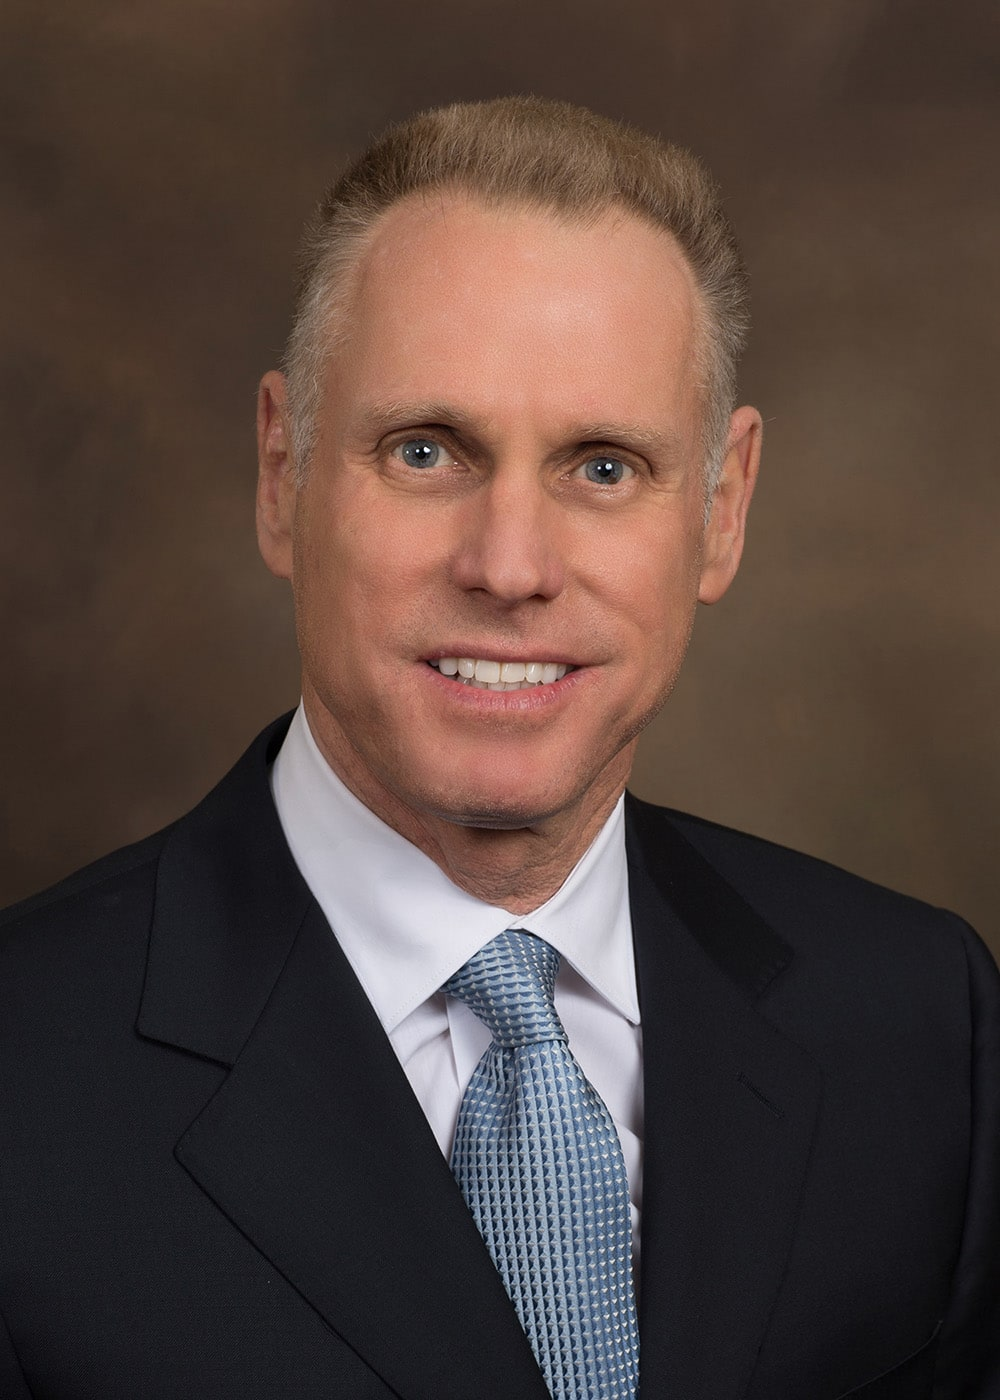 Dr. Andrew S Barloon MD